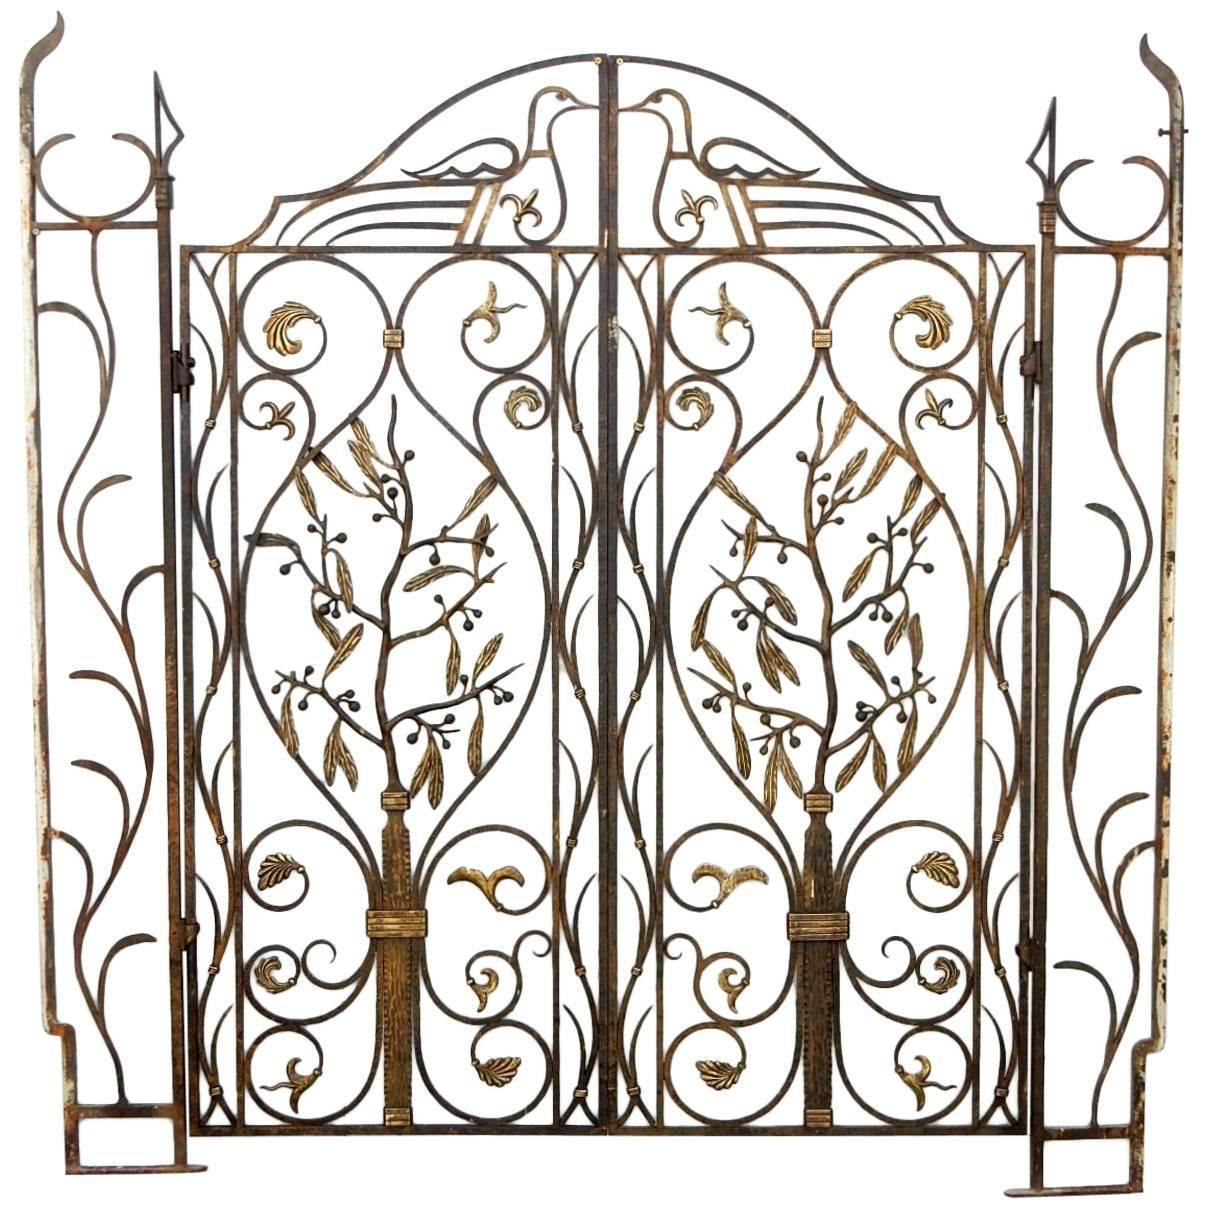 French Art Nouveau Architectural Iron And Bronze Gate In